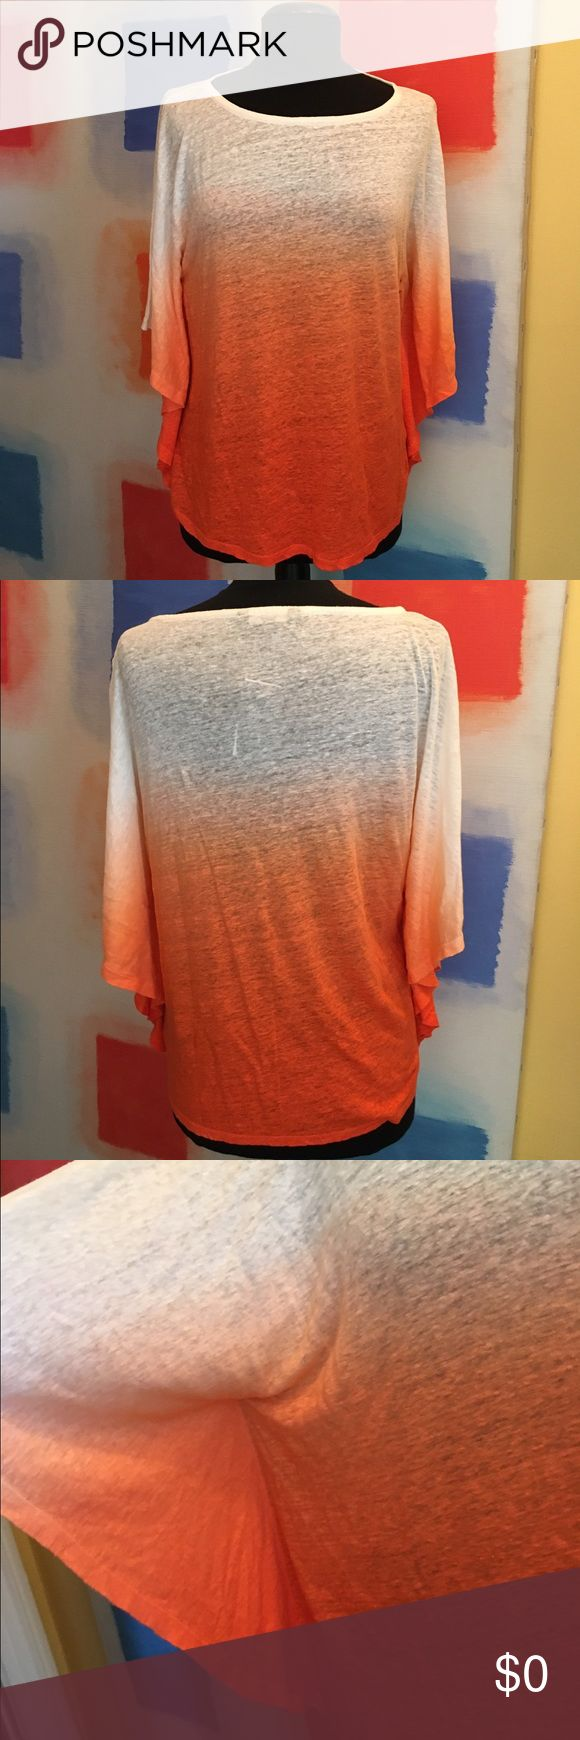 🆕 Ralph Lauren Batwing Ombré Linen Top NWT Ombré color. Beautiful cut. Sleeves fall just below the elbows. Relaxed look. Very chic.  100% very soft linen. Petite sizing. I have this in Medium & Large. MSRP $80. Ralph Lauren Tops Blouses